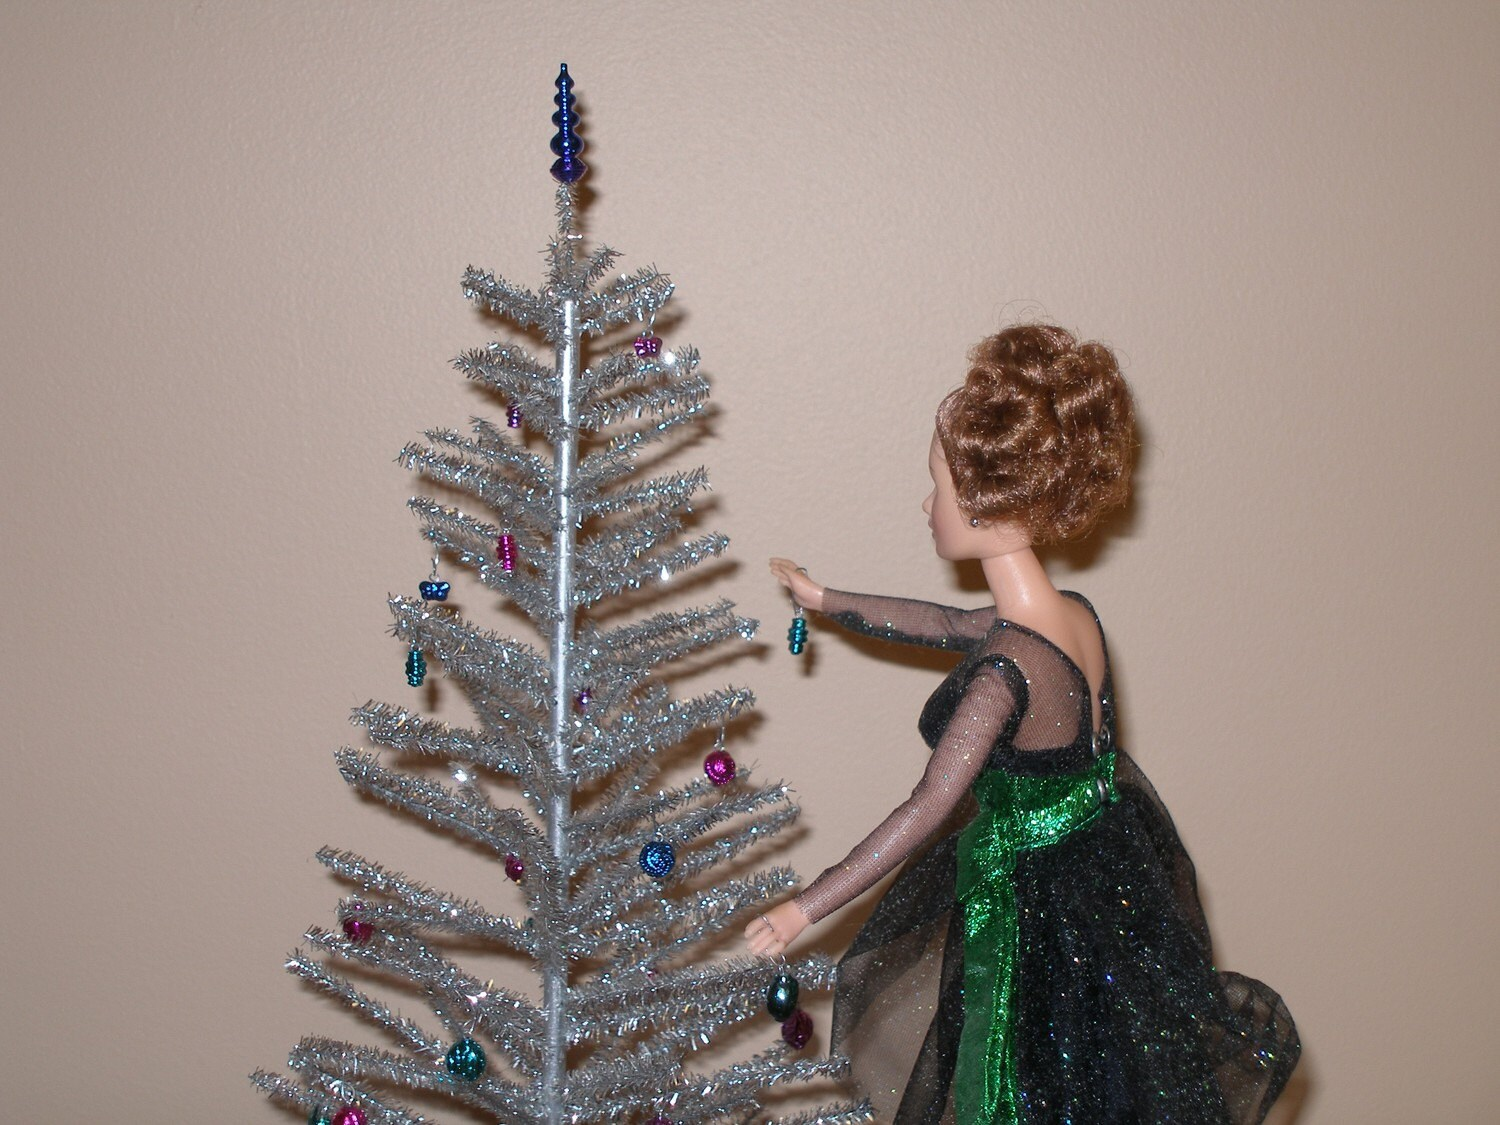 Playscale 1/6 Or 1/4 Scale Silver Aluminum Christmas Tree